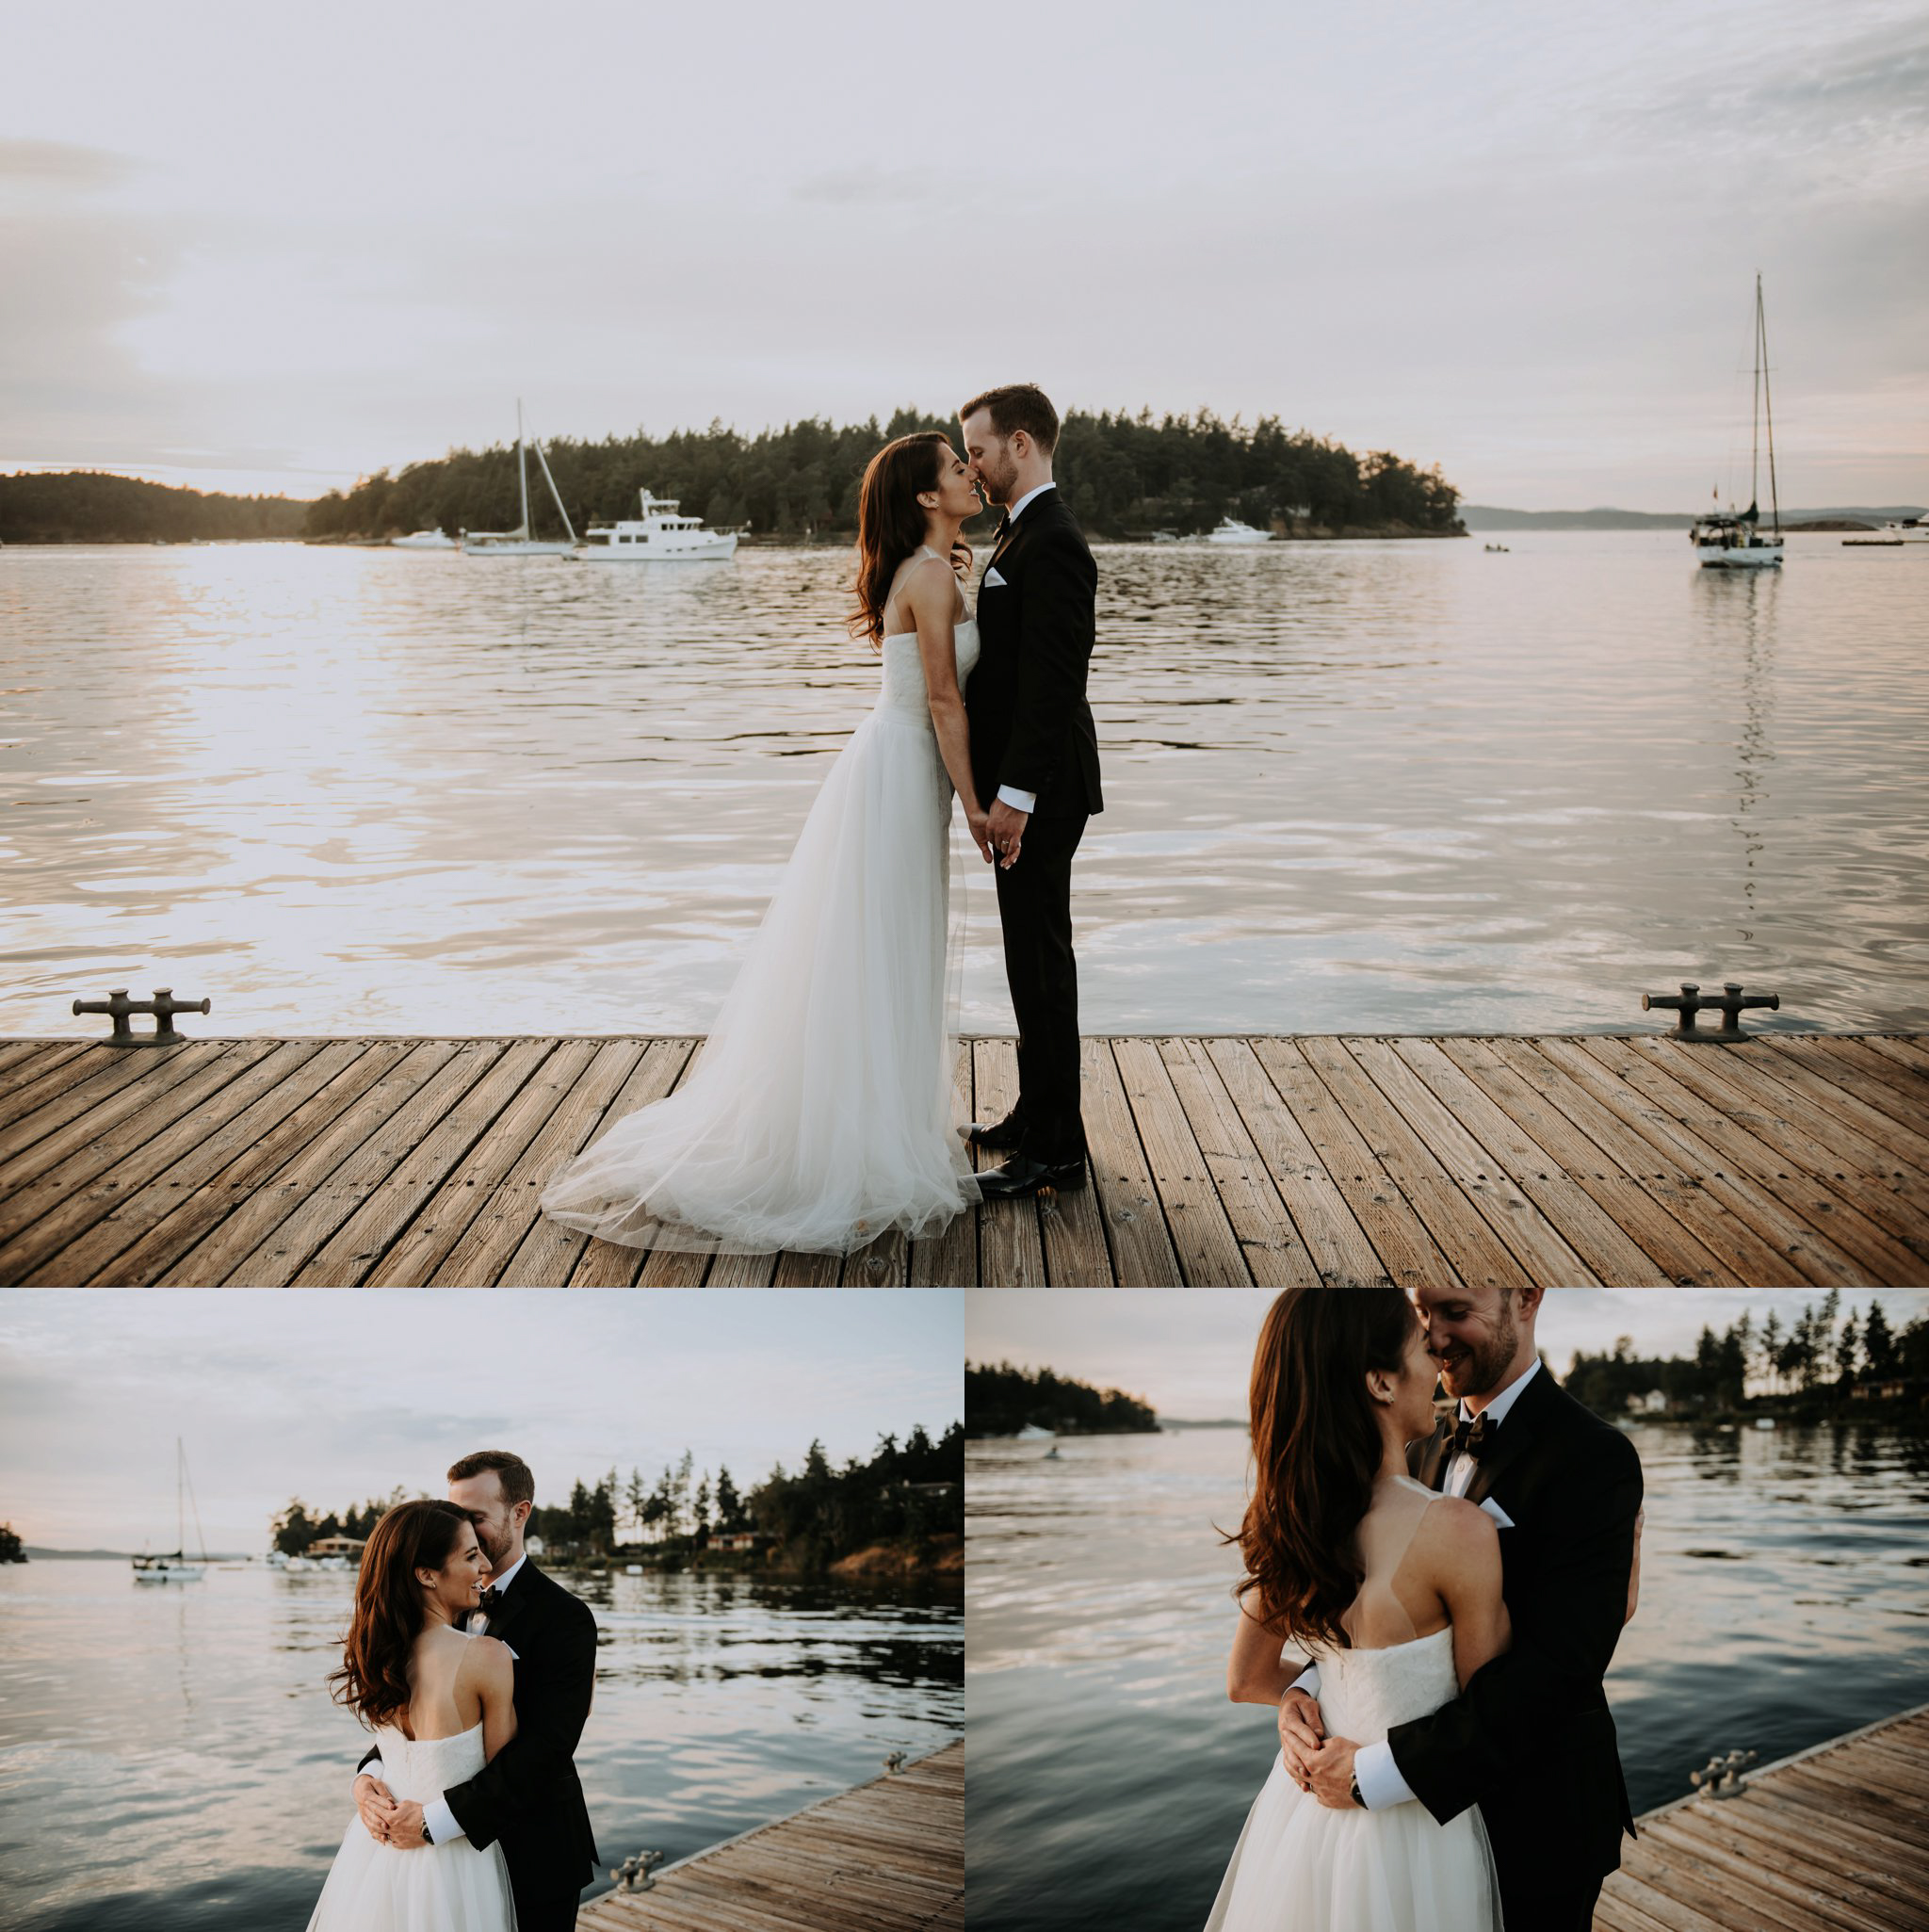 roche-harbor-resort-sand-juan-island-wedding-seattle-wedding-photograher-caitlyn-nikula-143.jpg